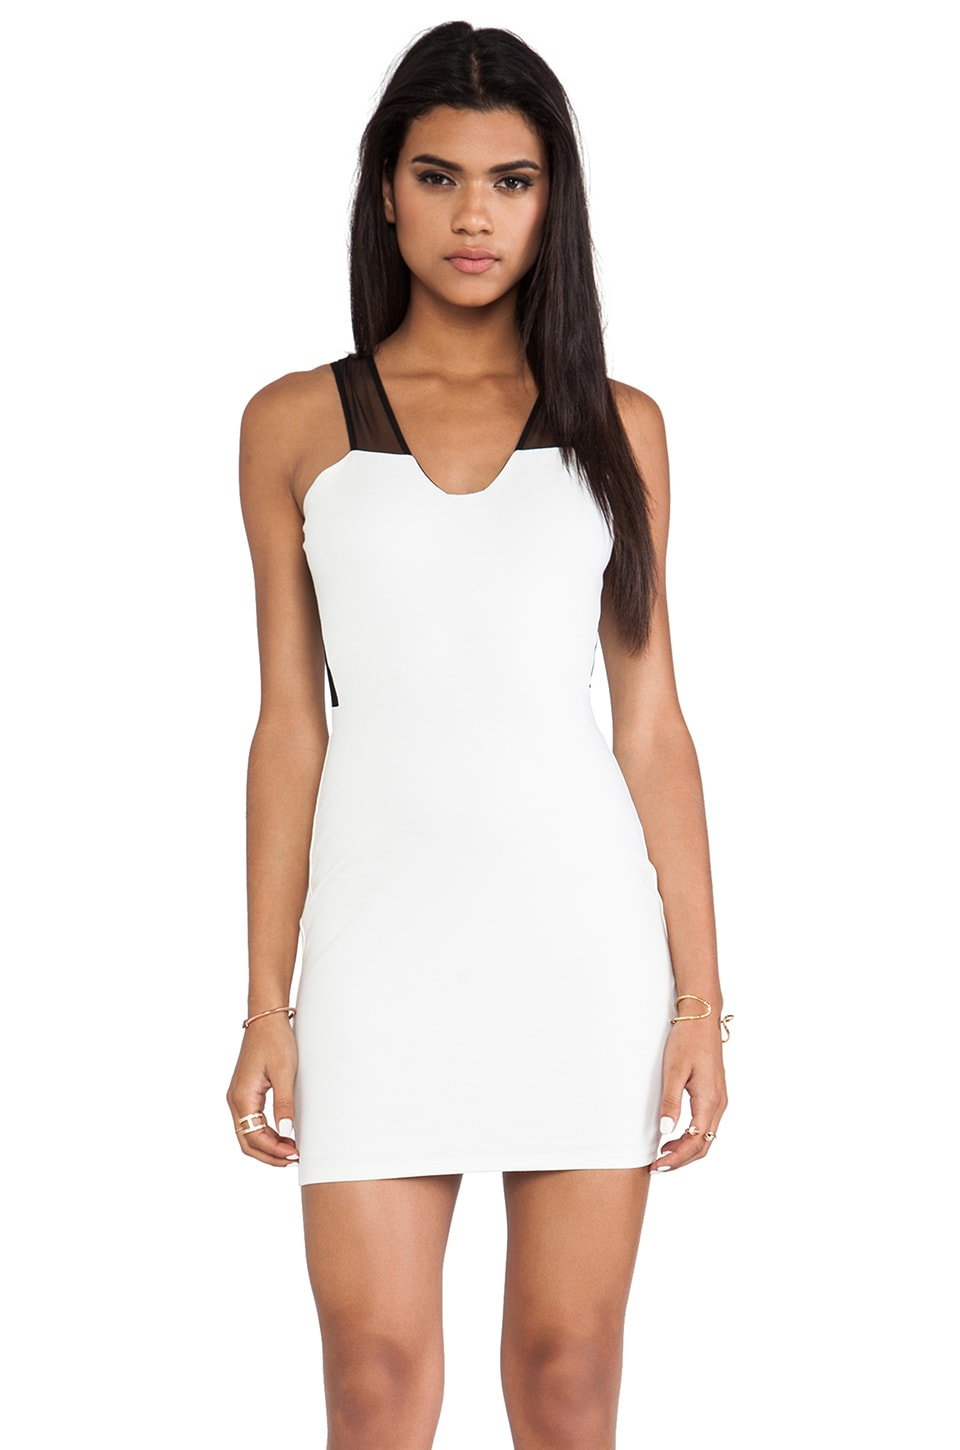 Mason by Michelle Mason Mesh Inset Sleeveless Plunge Neck Dress in Black/White